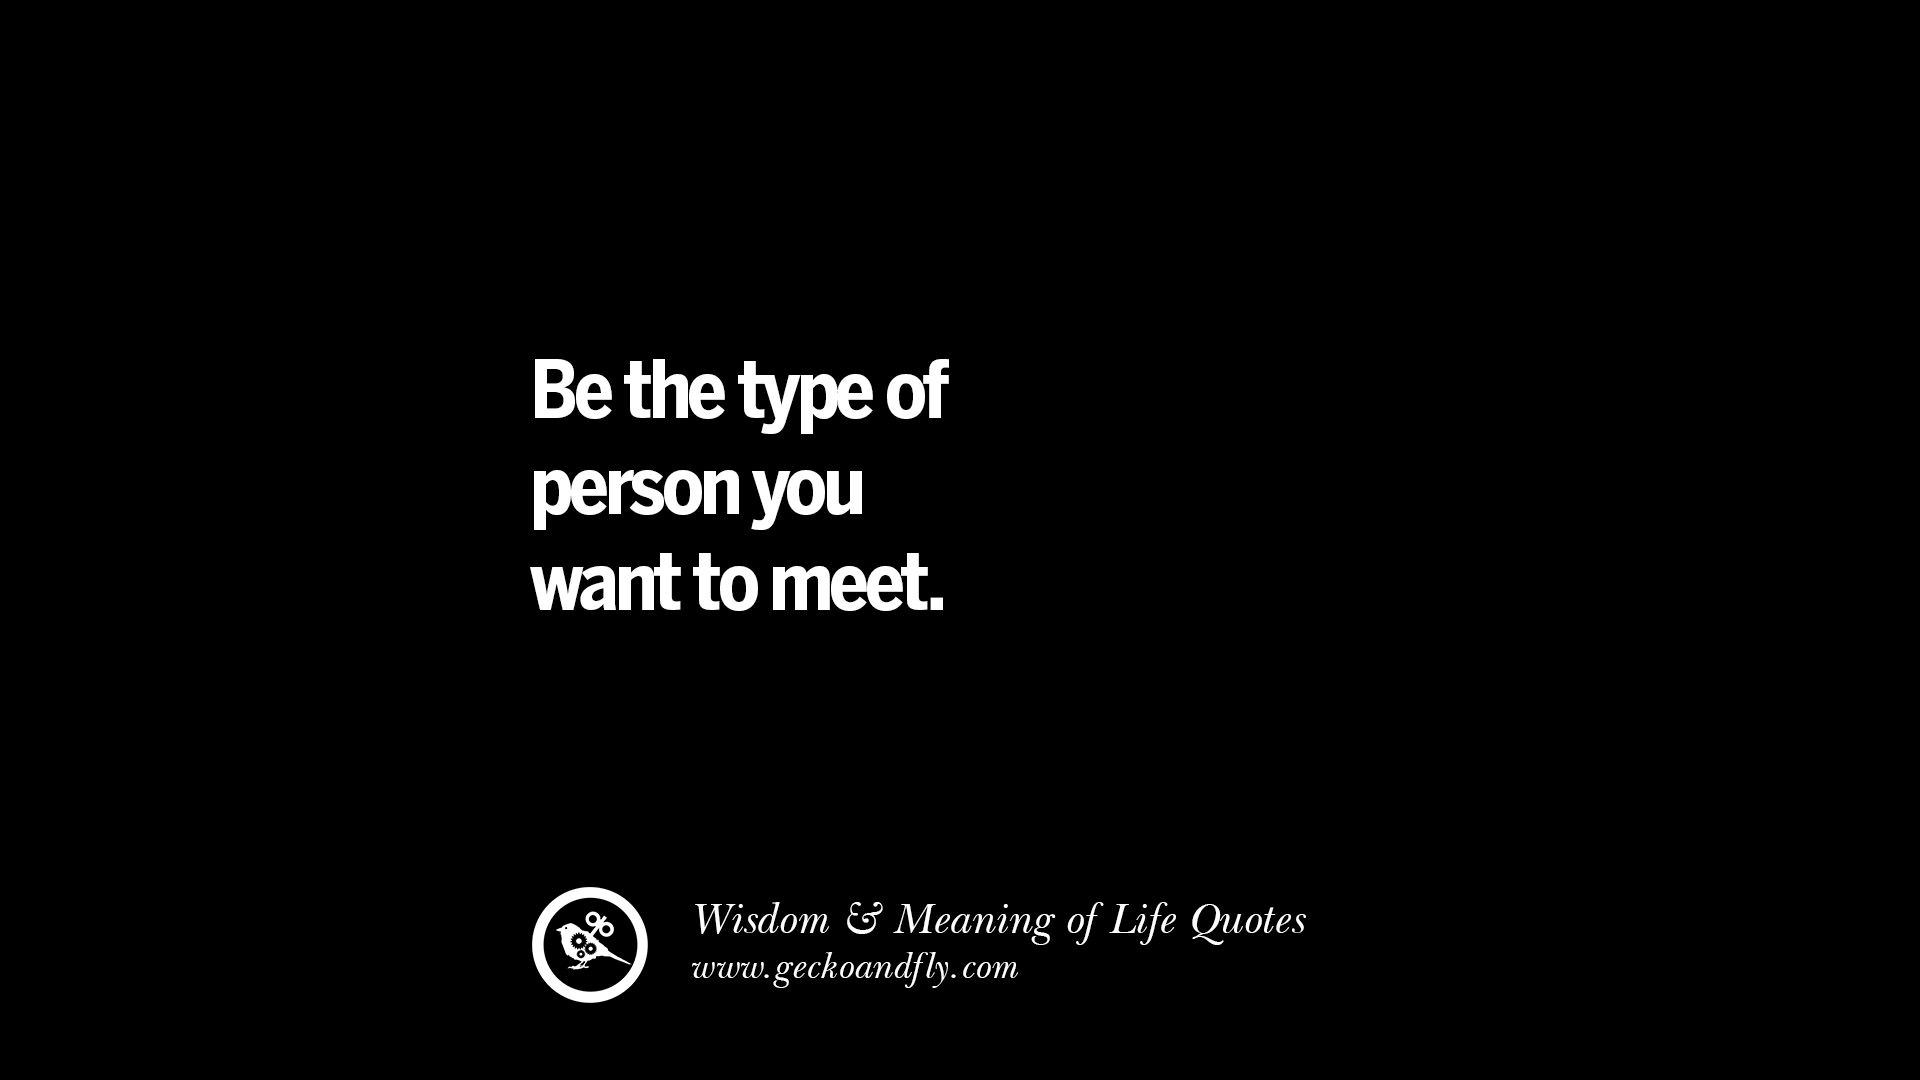 Cute Wallpapers With Bff Quote 24 Funny Eye Opening Quotes About Wisdom Truth And